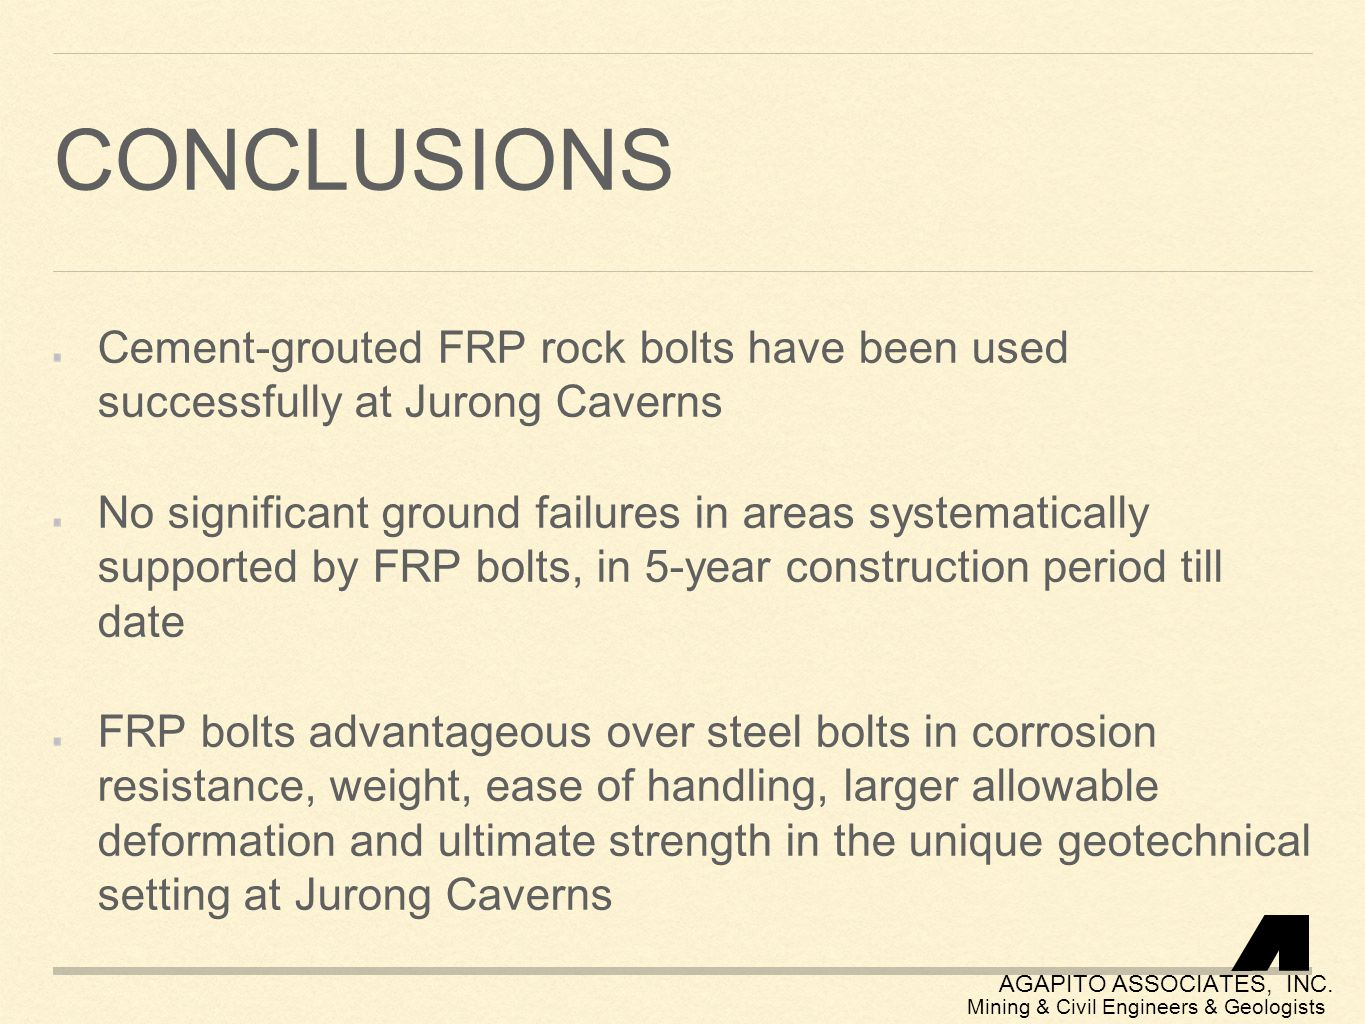 Conclusions Cement-grouted FRP rock bolts have been used successfully at Jurong Caverns.